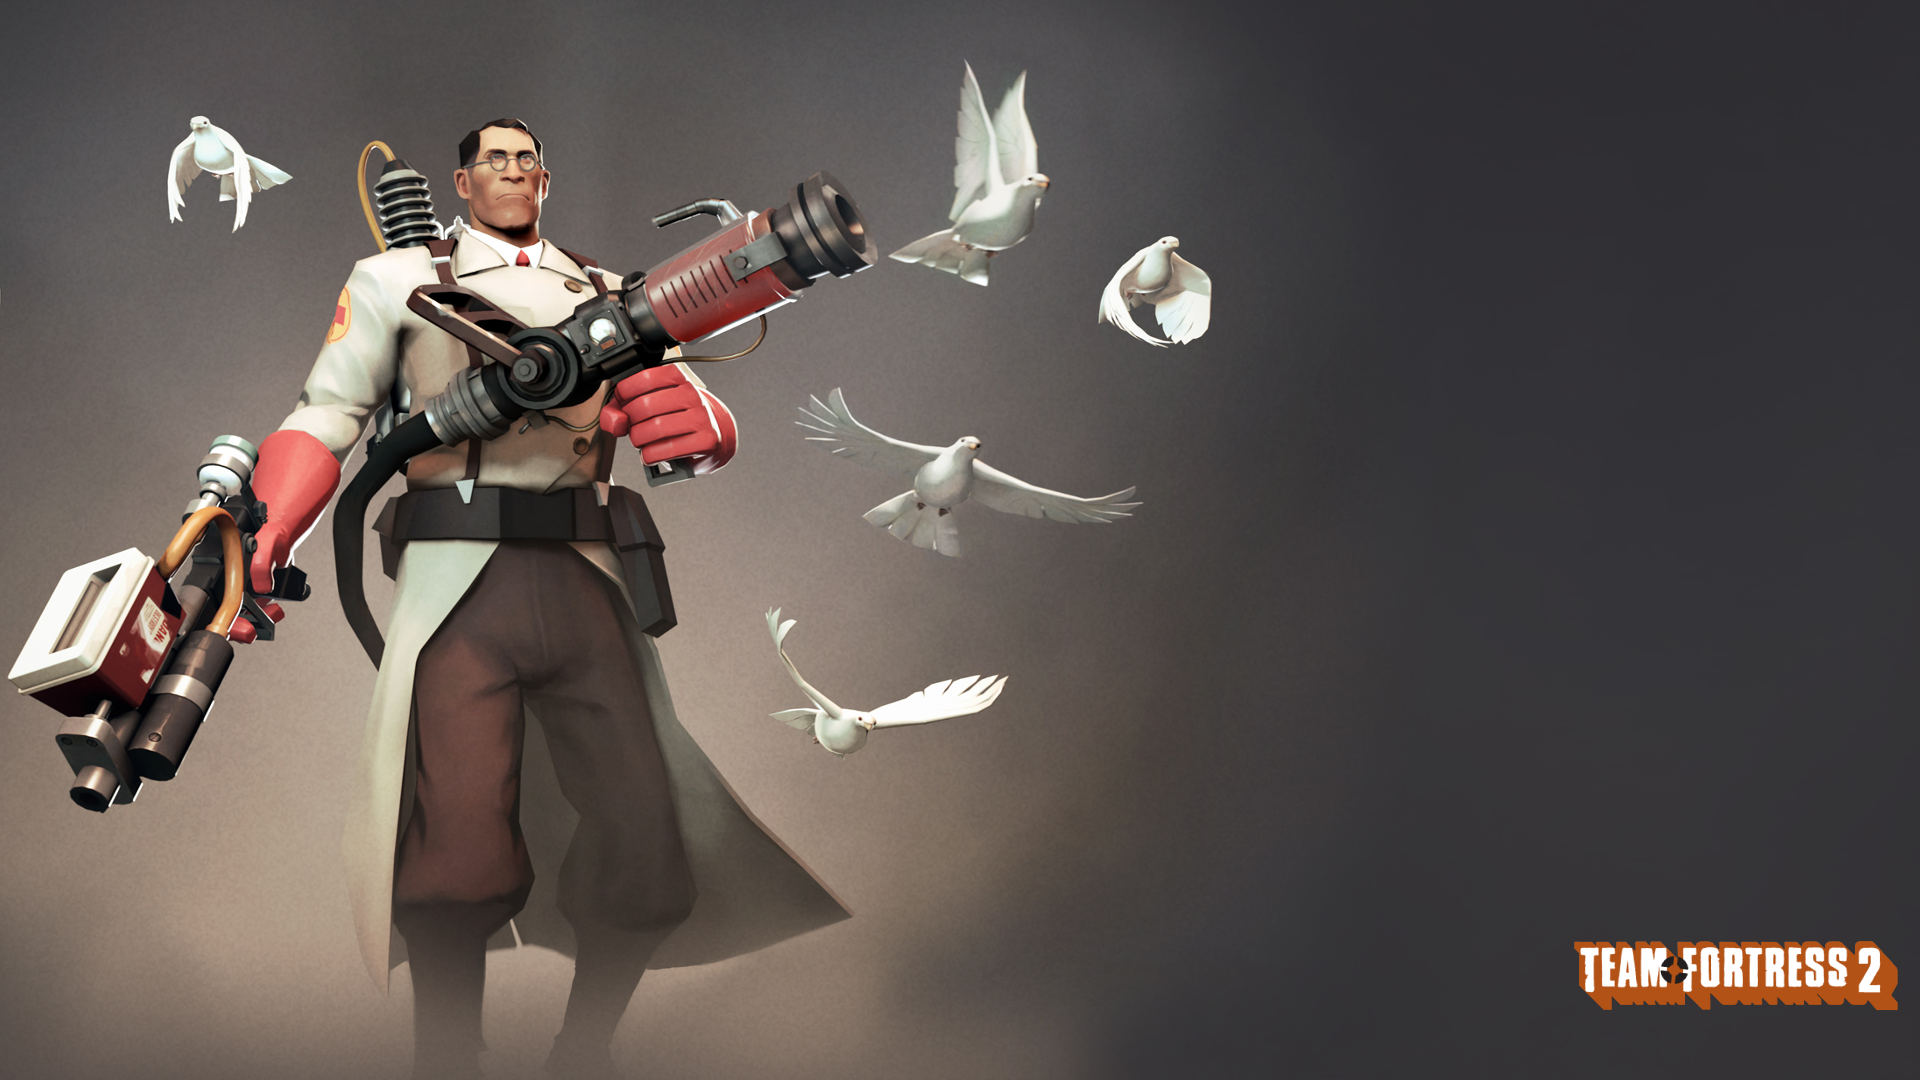 Tf2 Medic Wallpaper